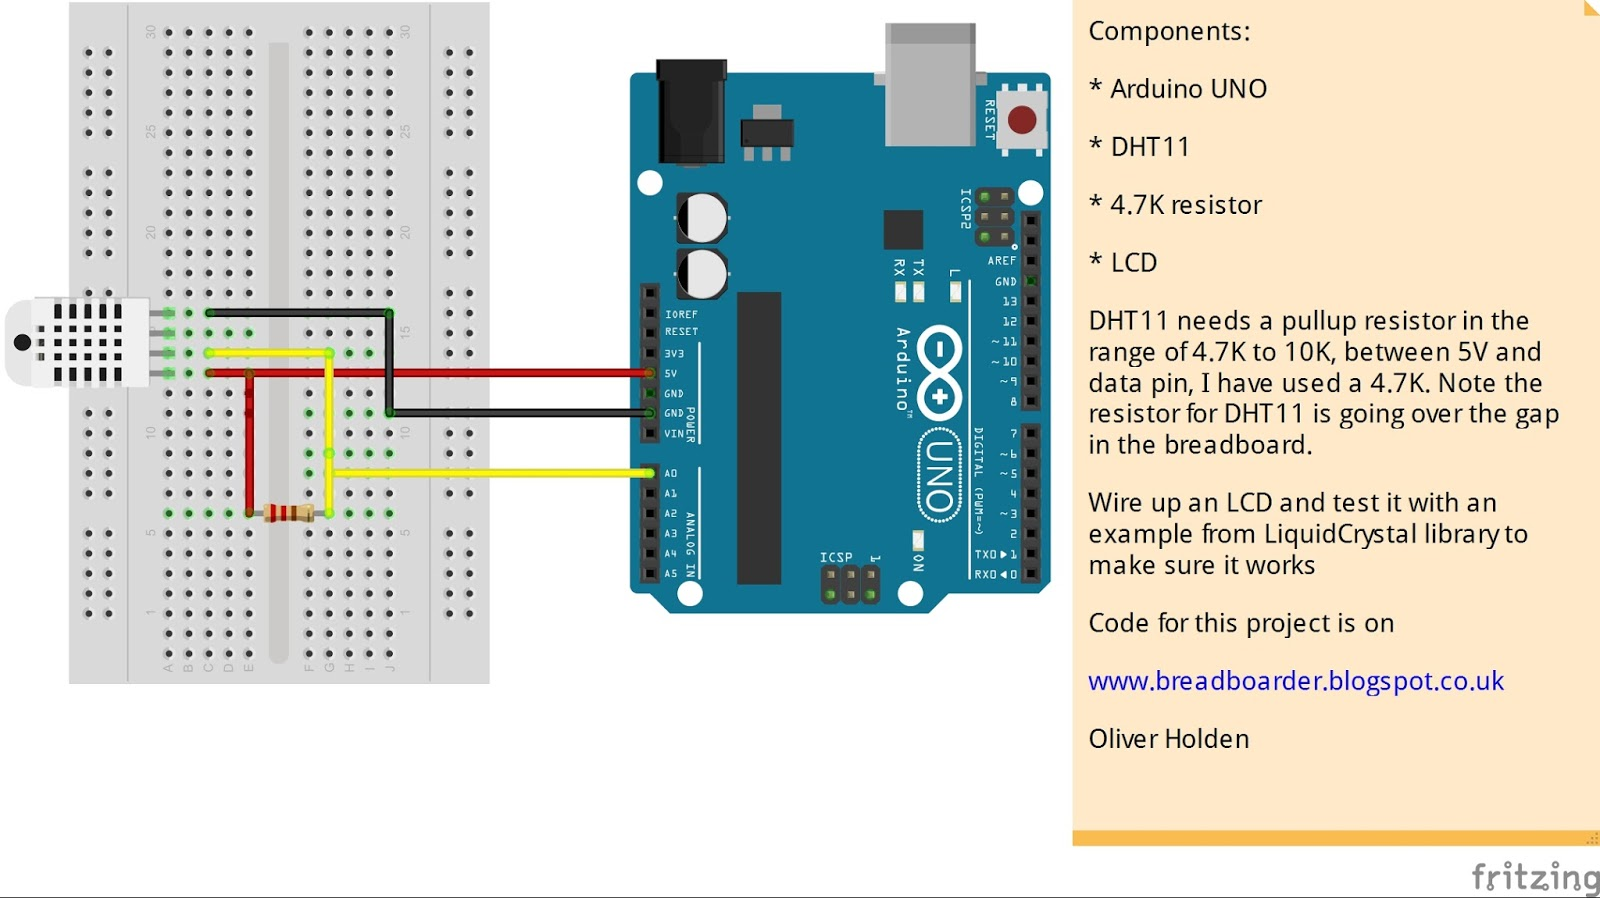 Full moreover Simulation Of Arduino Mega 2560 With Gsm Module Using Proteus additionally Smart Thermostat E1f400 moreover Arduino Calculator in addition Lglp42slpv2ev3 Lg 42 Inch Lcd Tv Smps. on lcd schematic